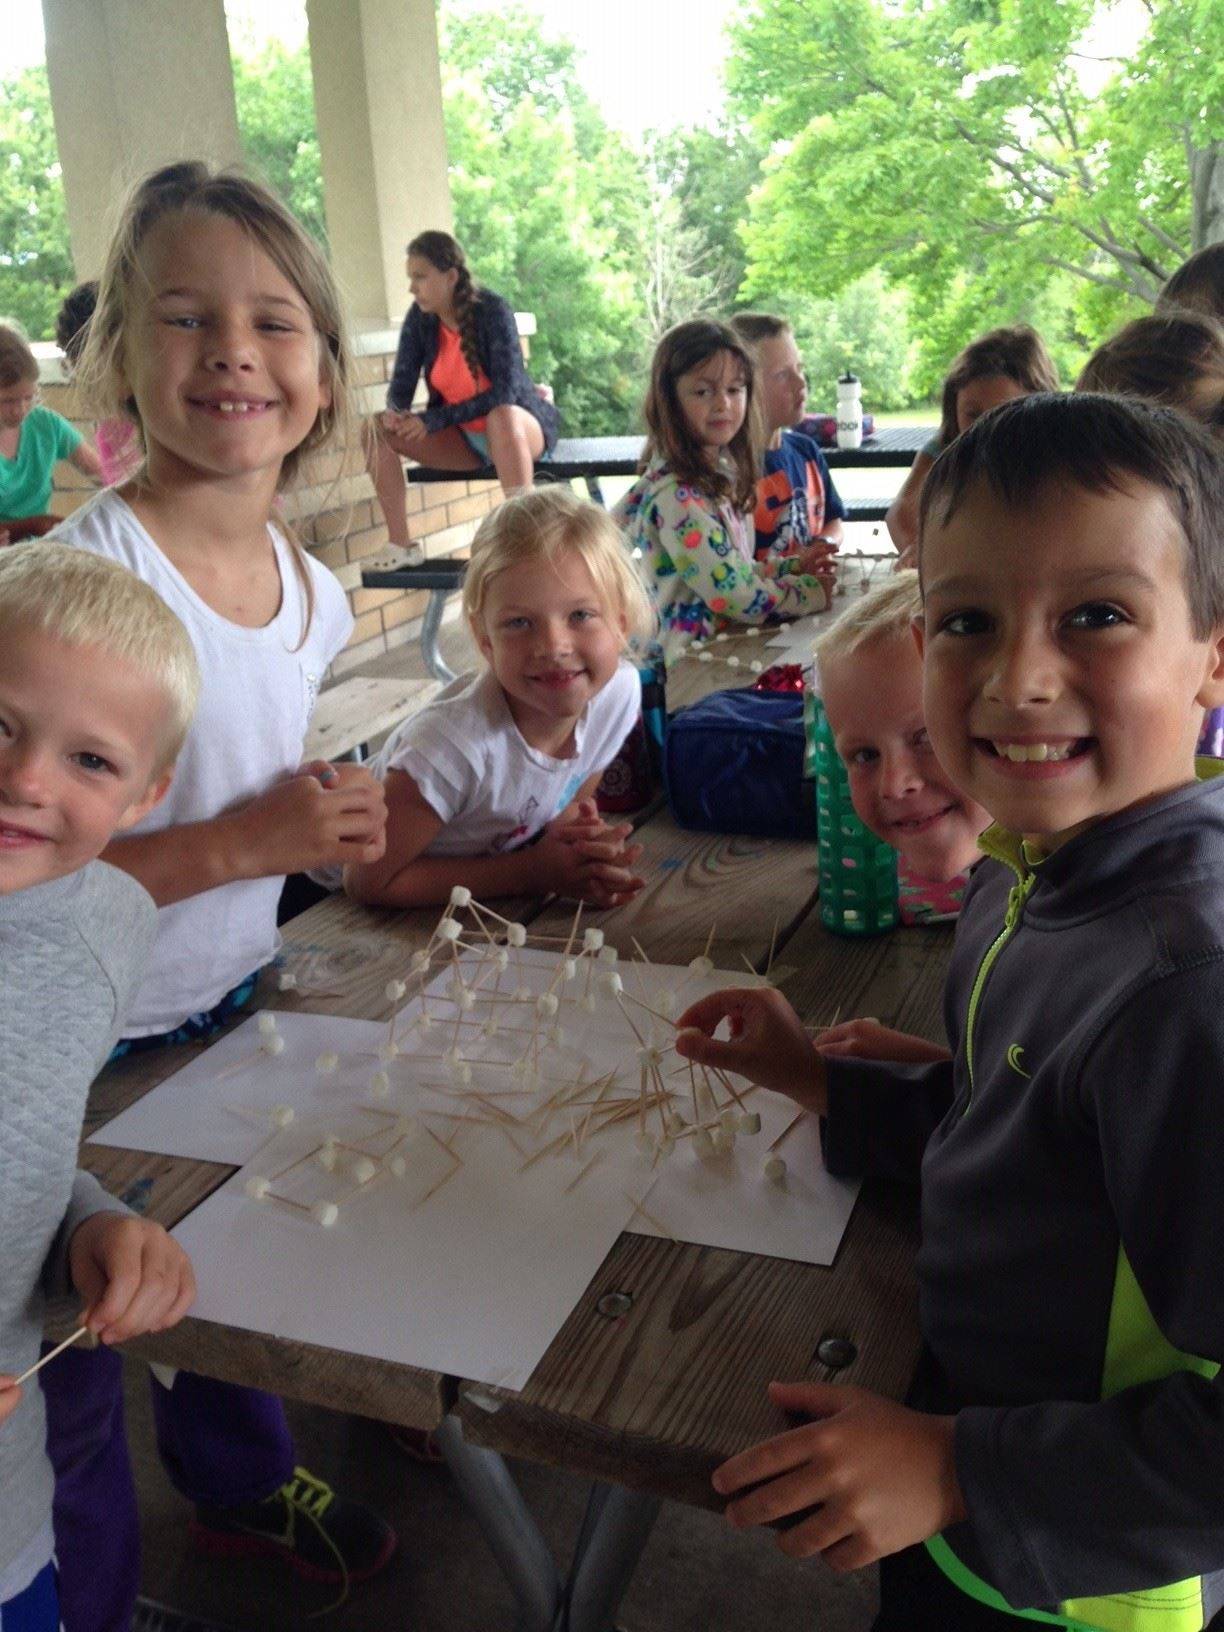 Kids doing toothpick crafts